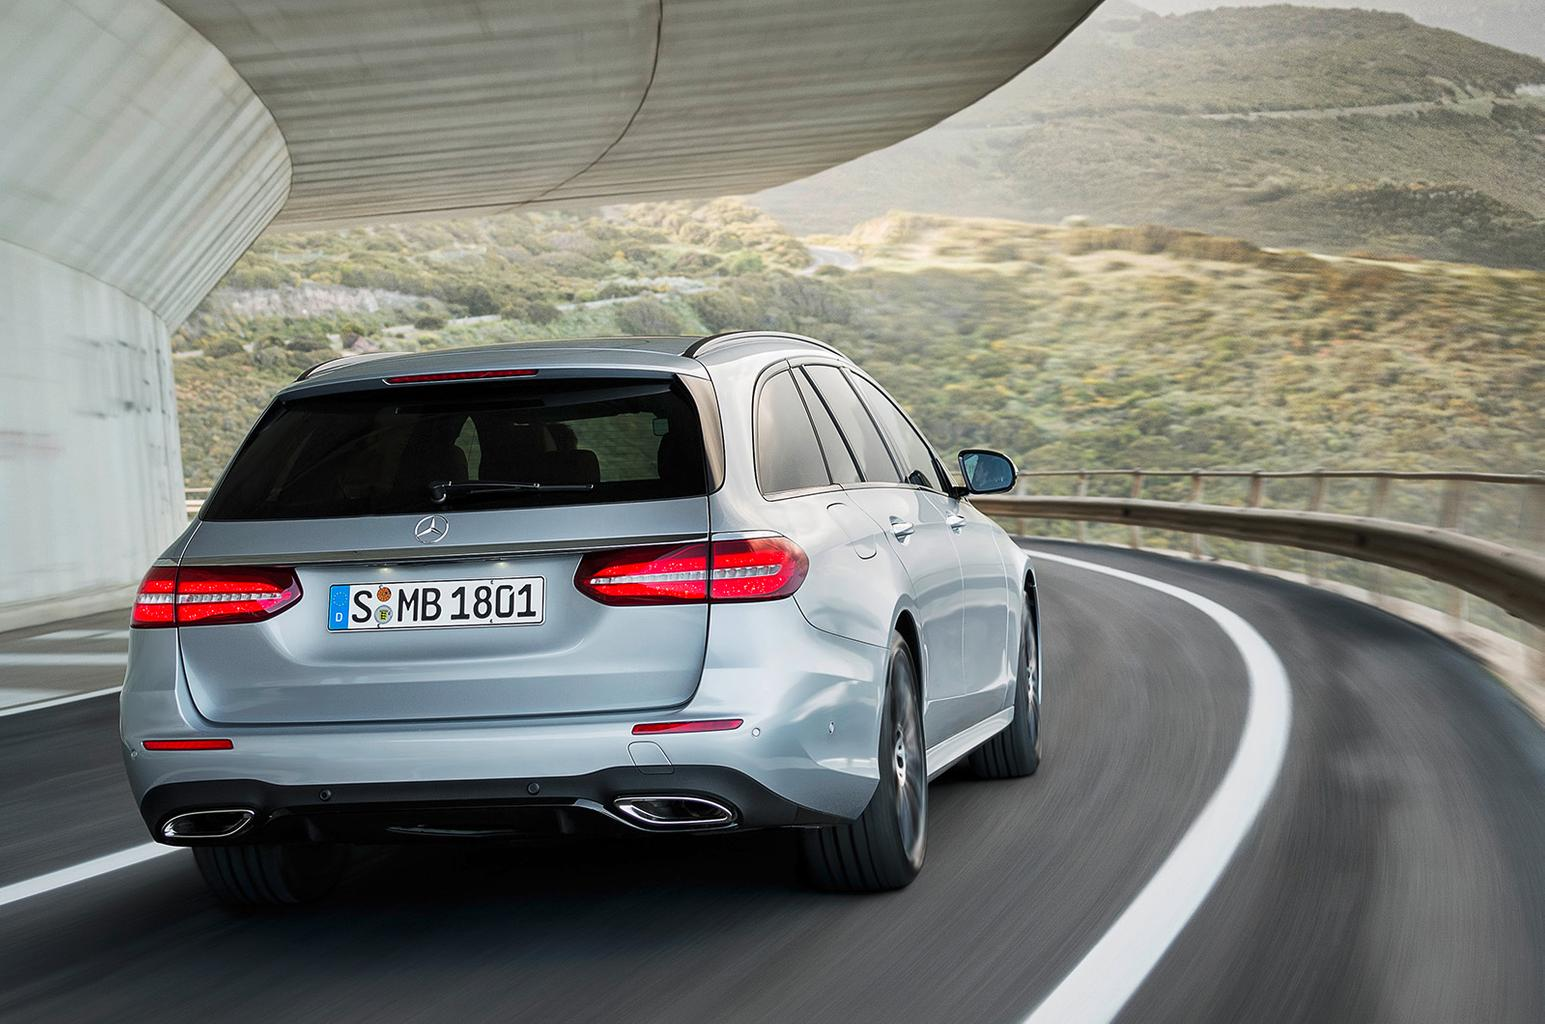 New Mercedes-Benz E-Class Estate priced from £37,935